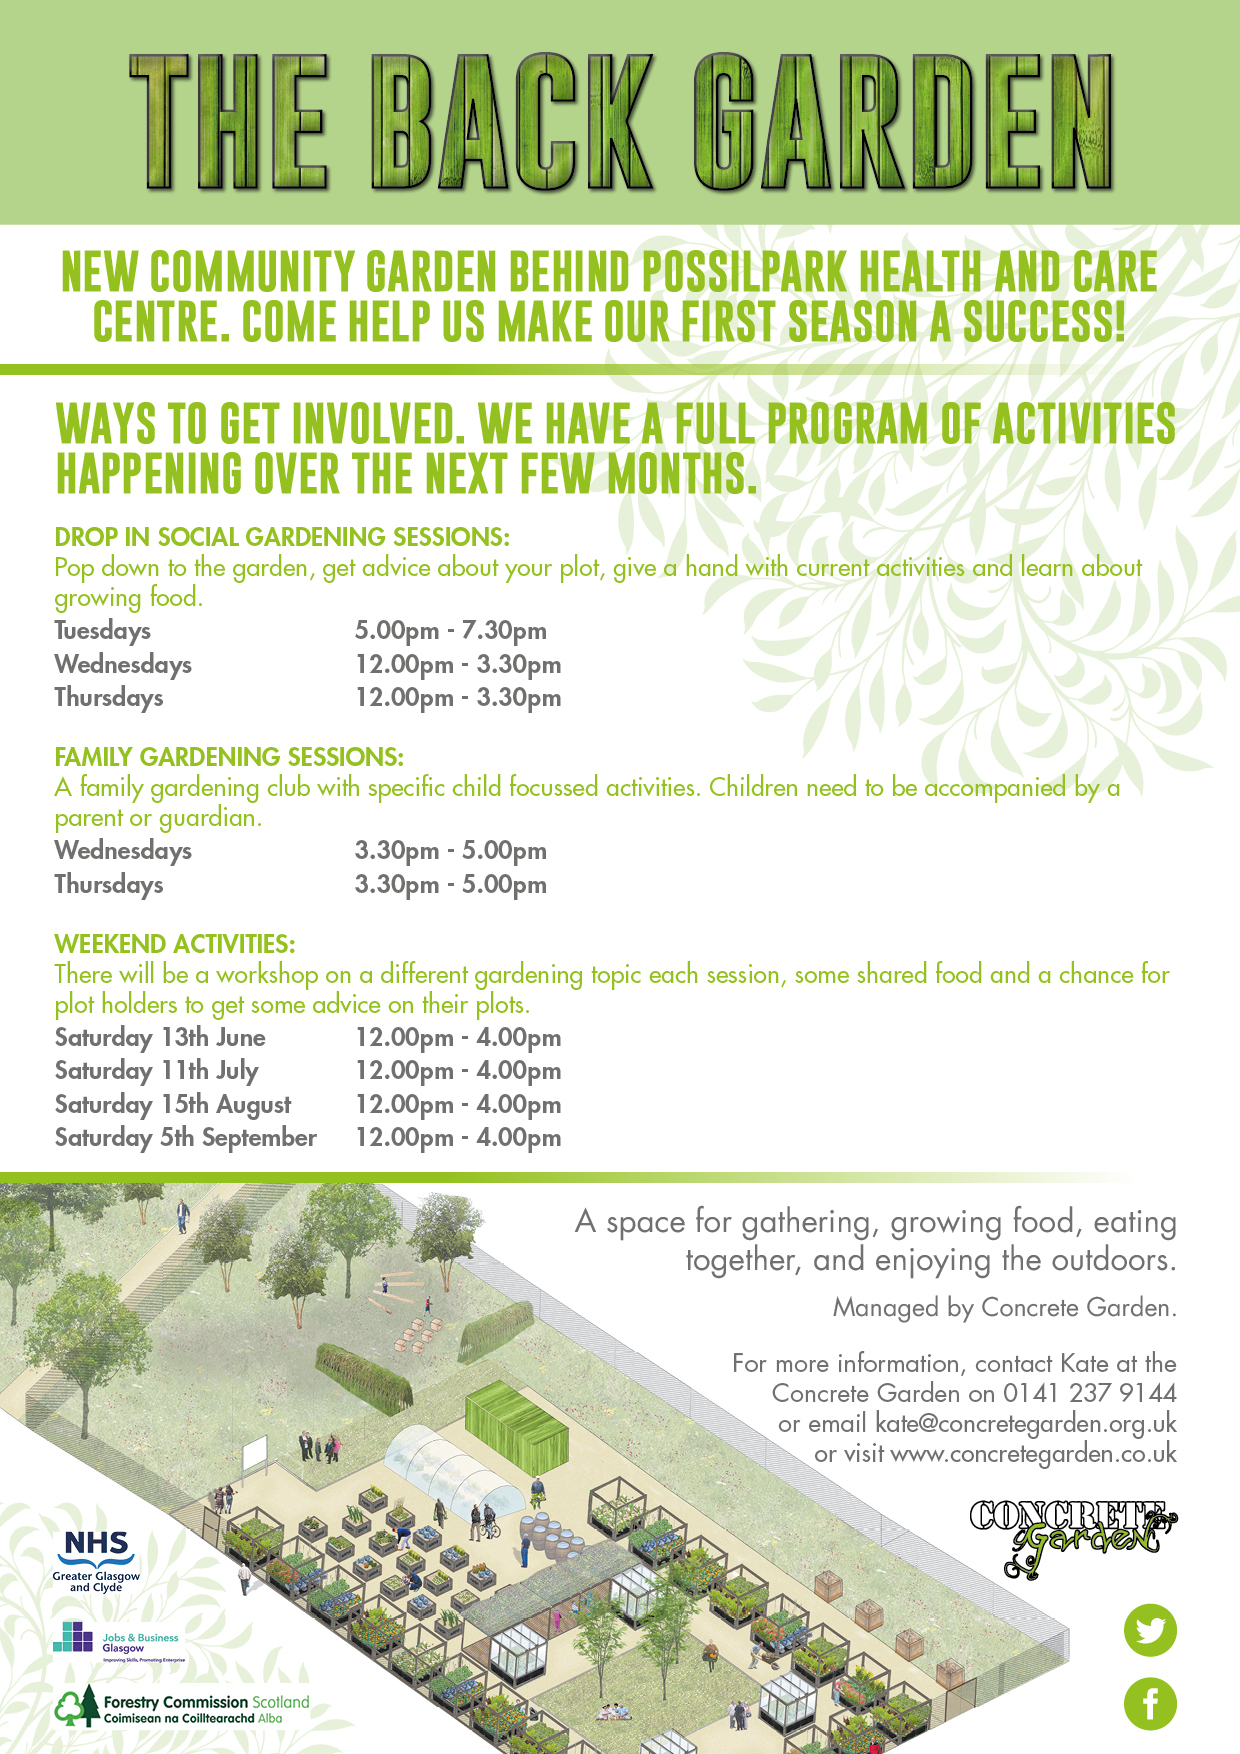 New community garden in Glasgow holding events throughout